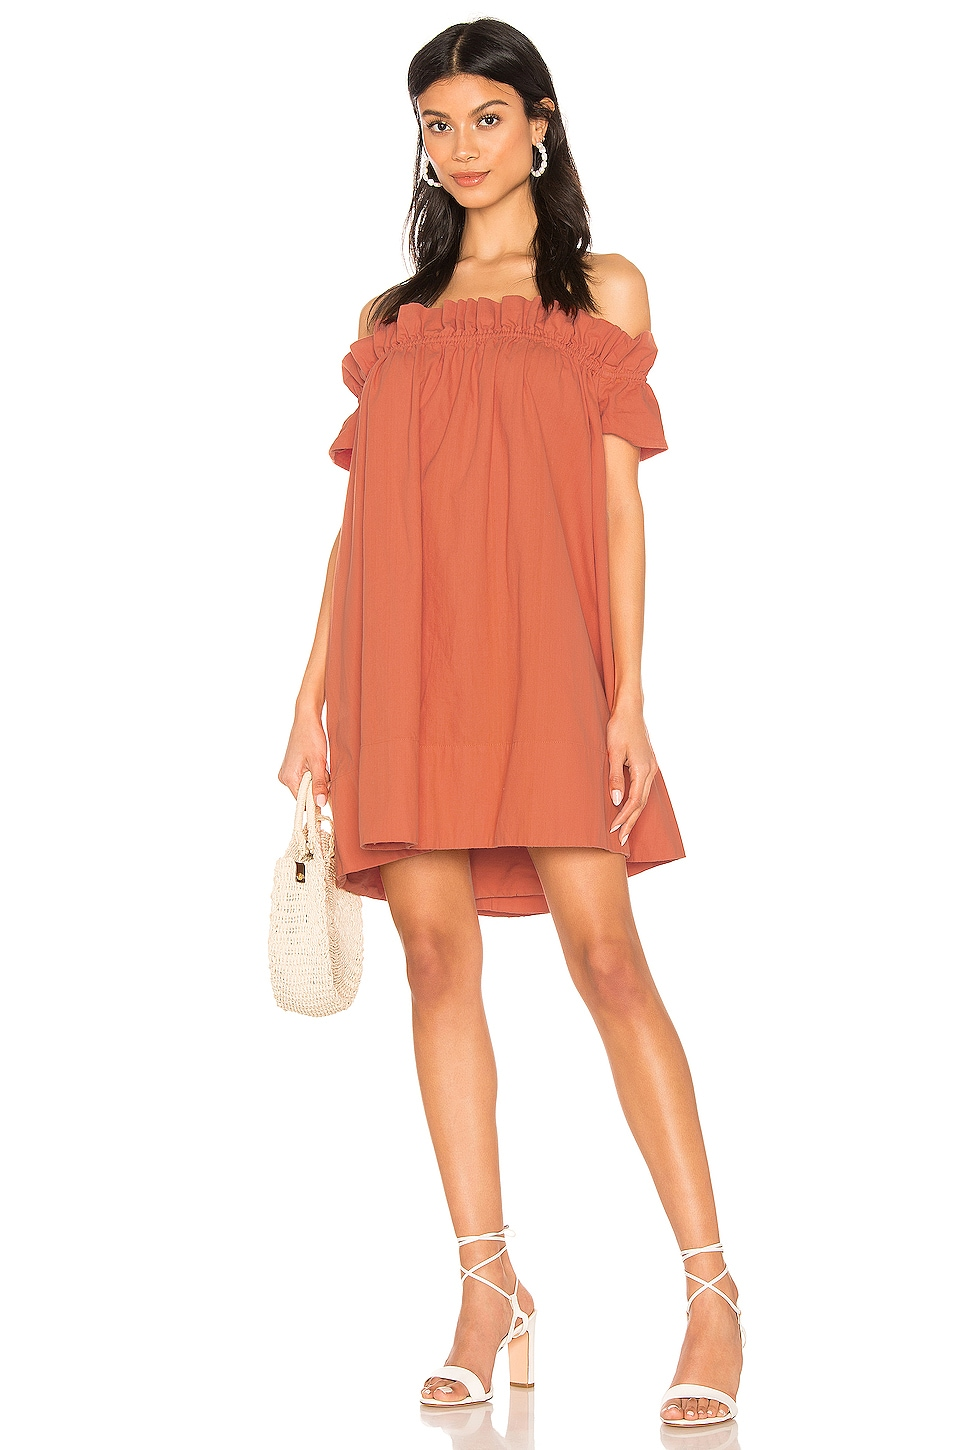 Free People Sophie Dress in Perpetual Sunset